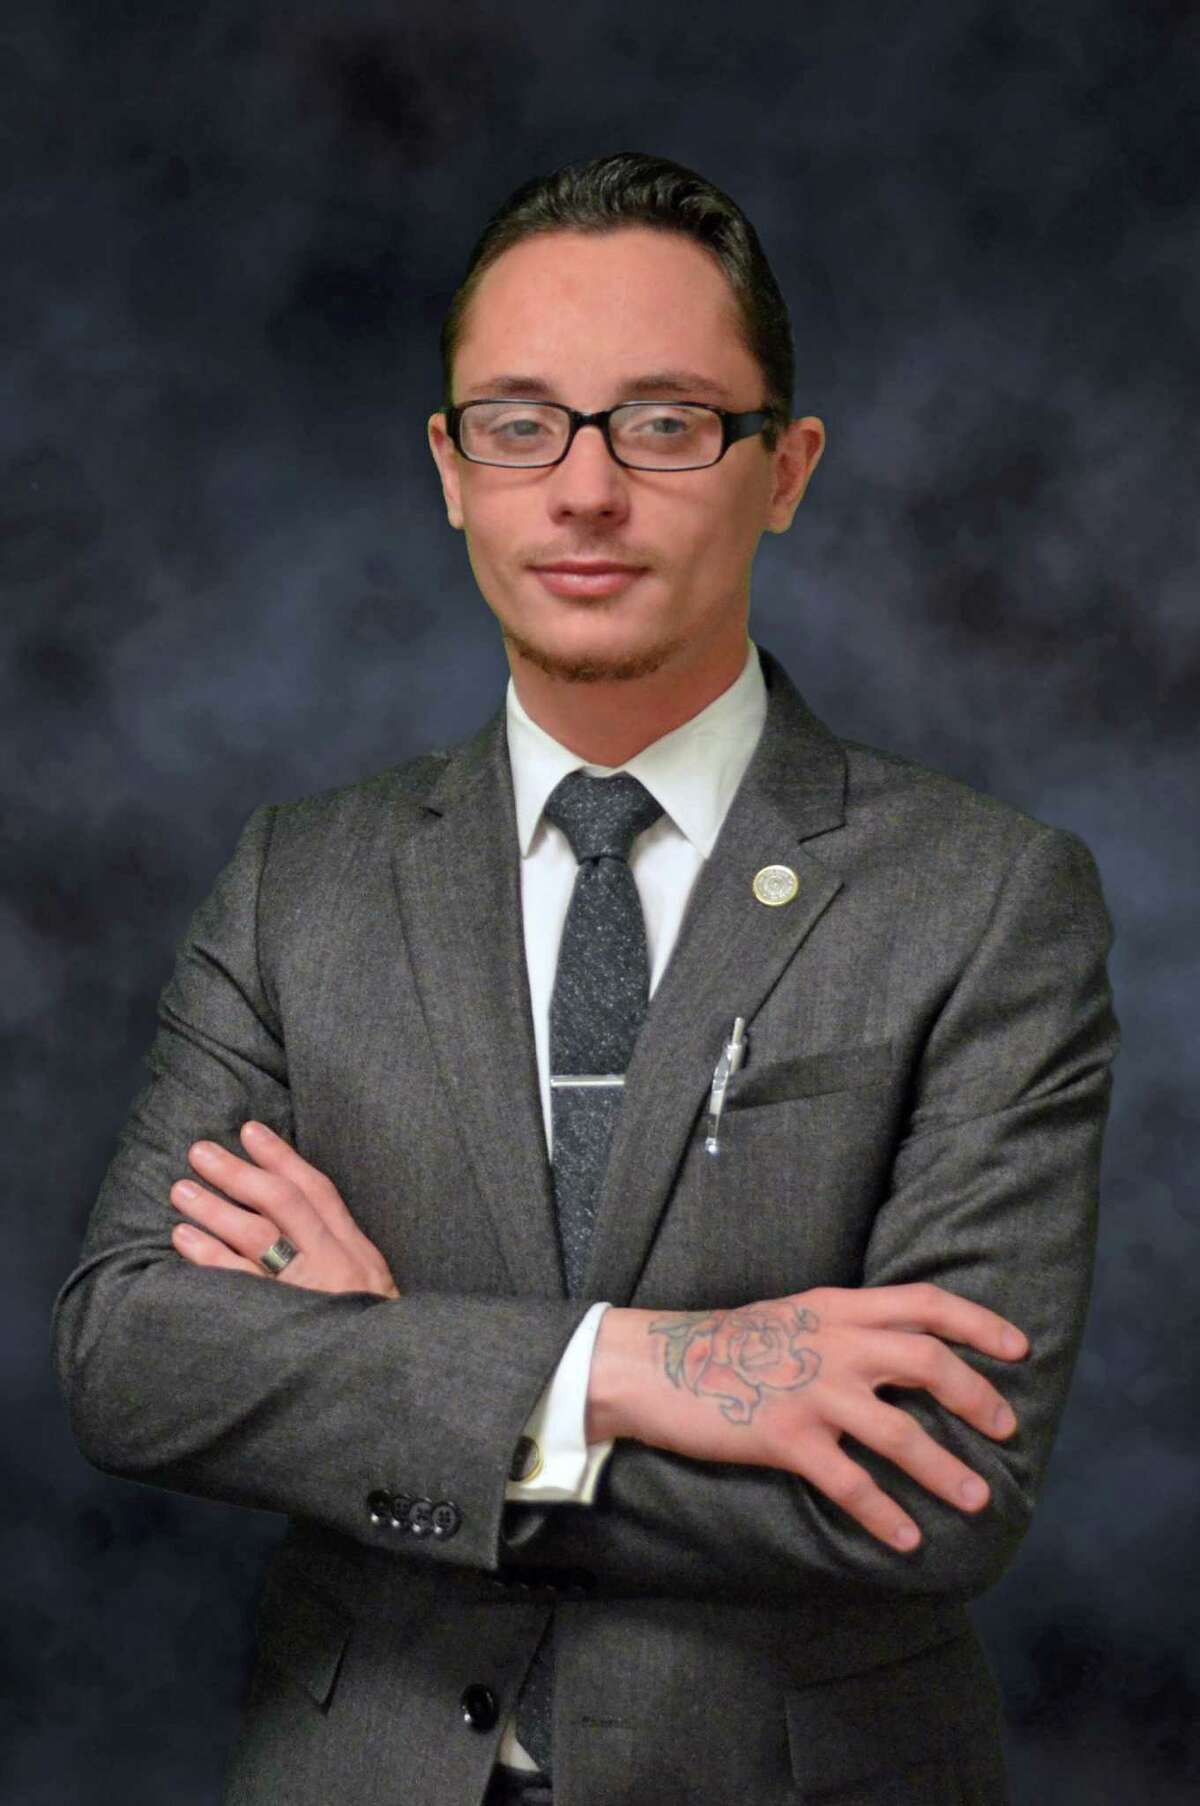 Kristopher Sharp, vice president of the University of Houston-Downtown Student Government Association, is hopeful the university will convert gender-segregated restrooms to gender-neutral.